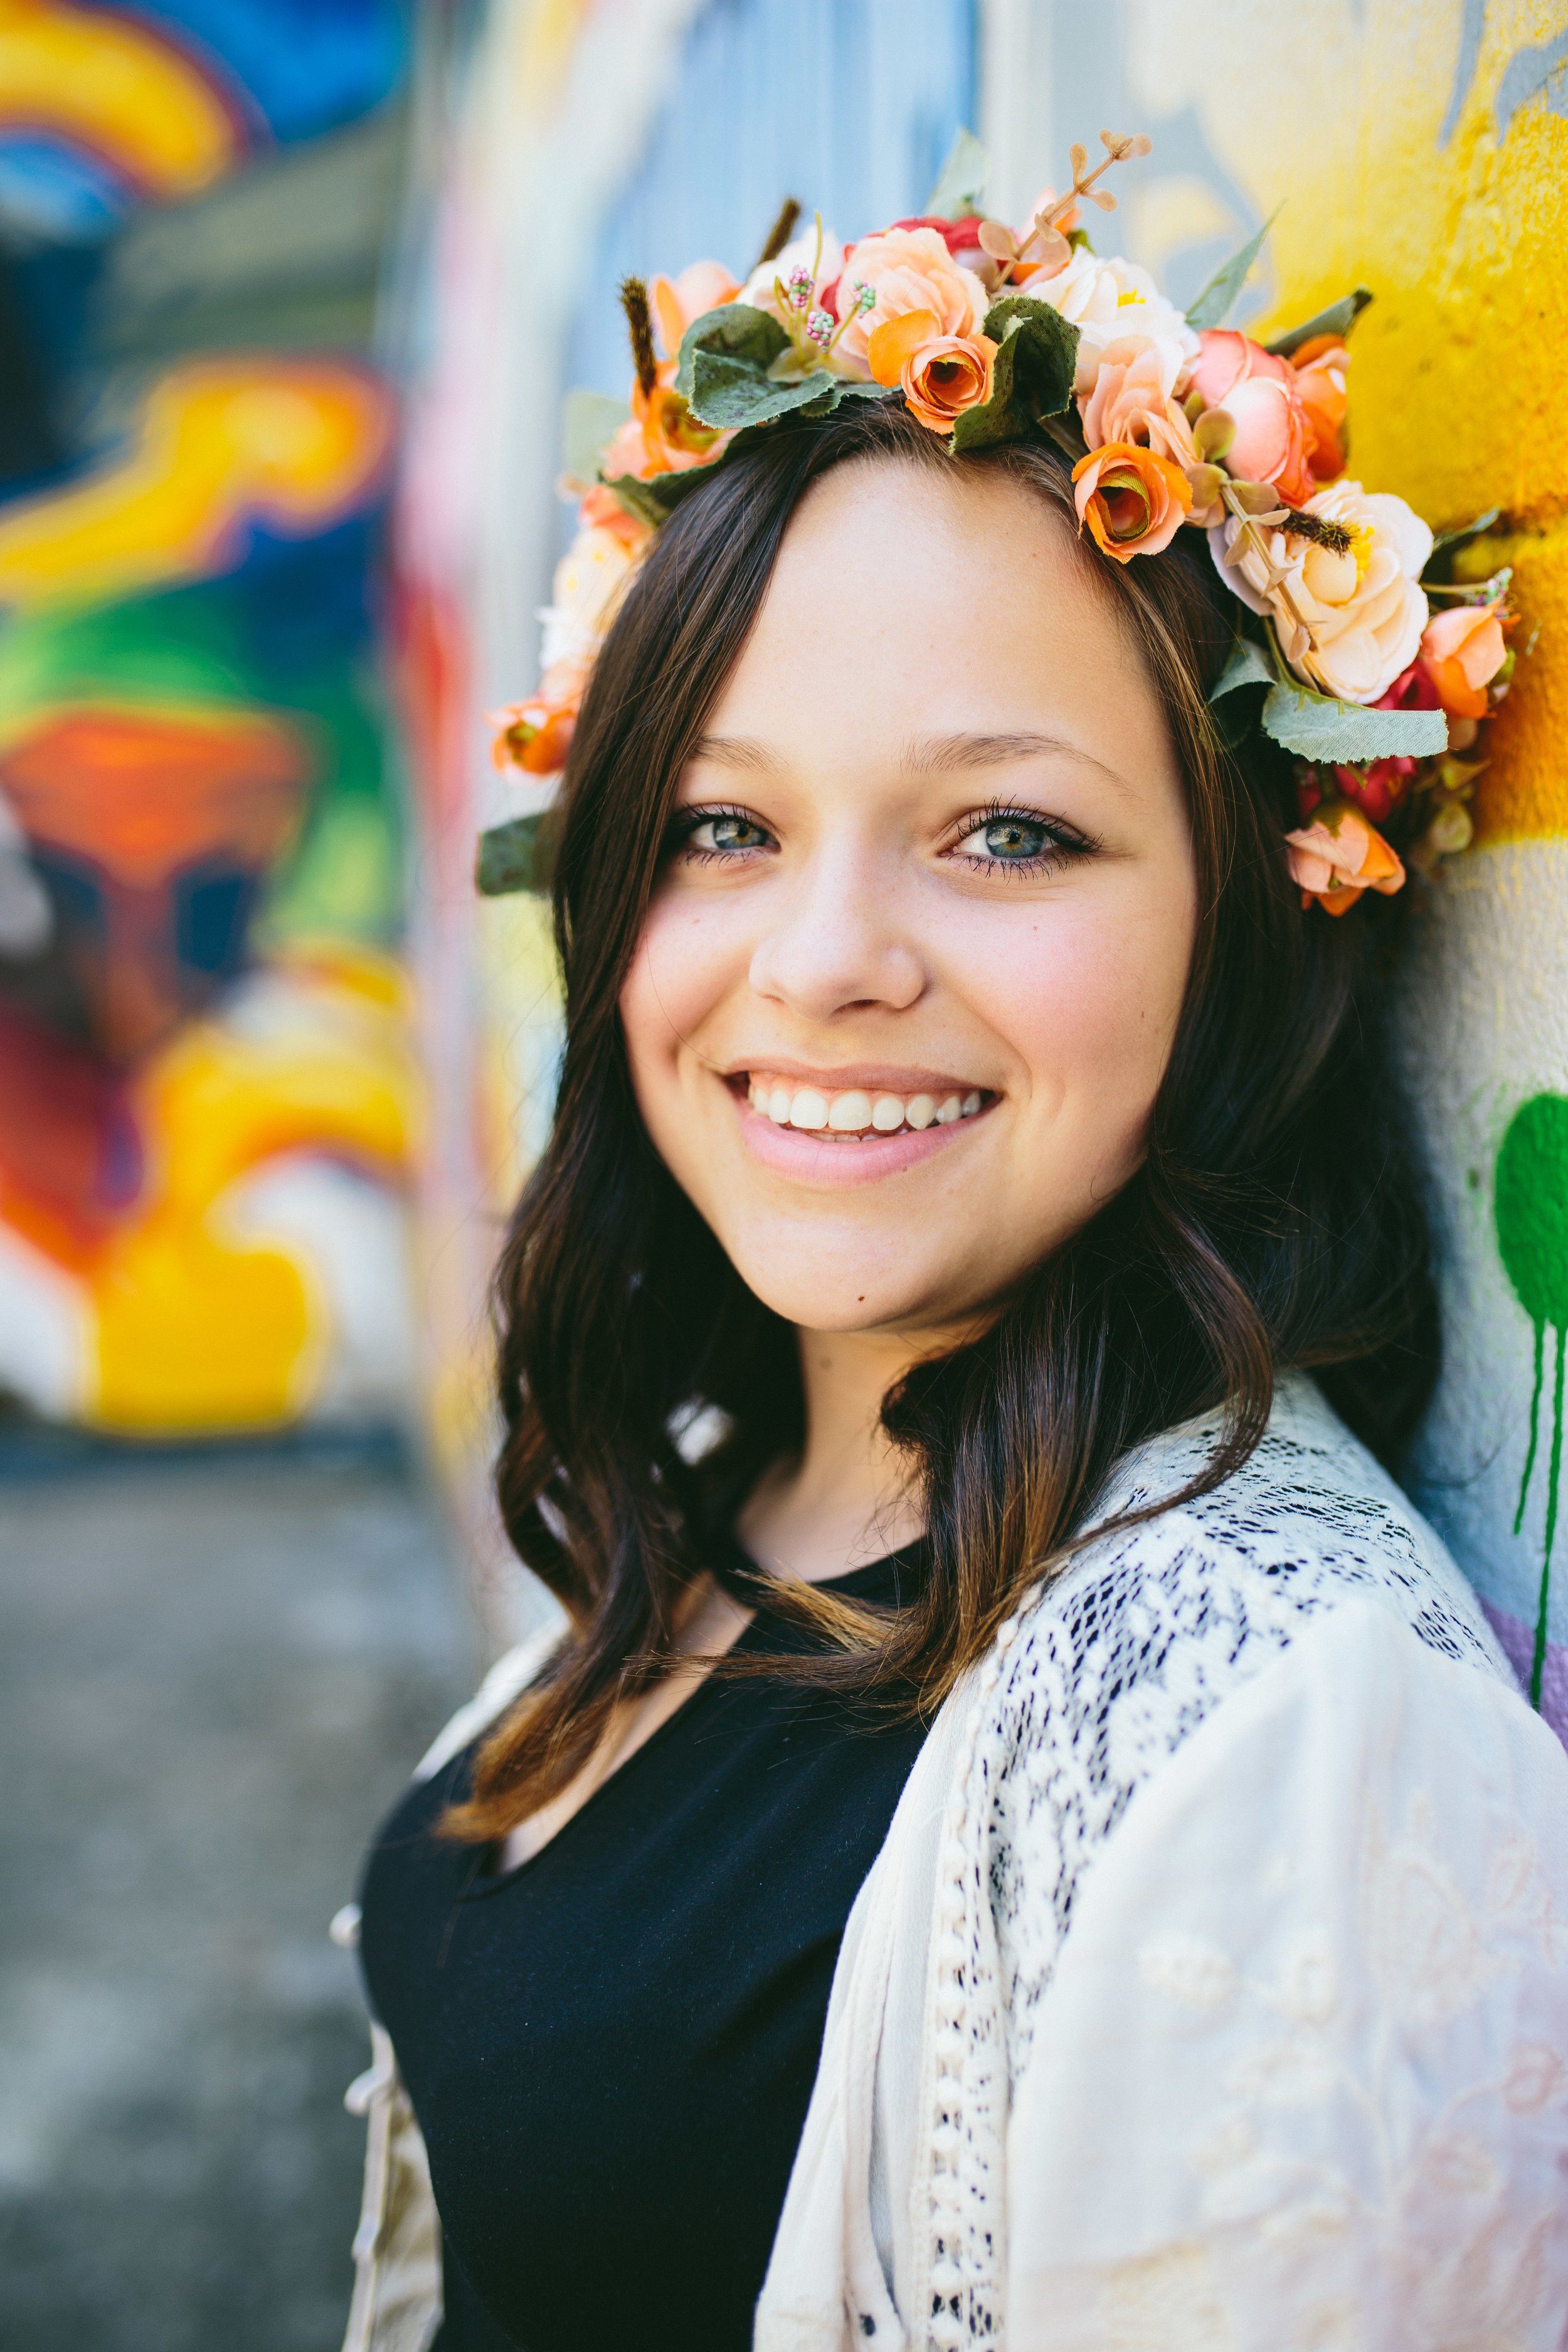 Flower-crown-senior-girl